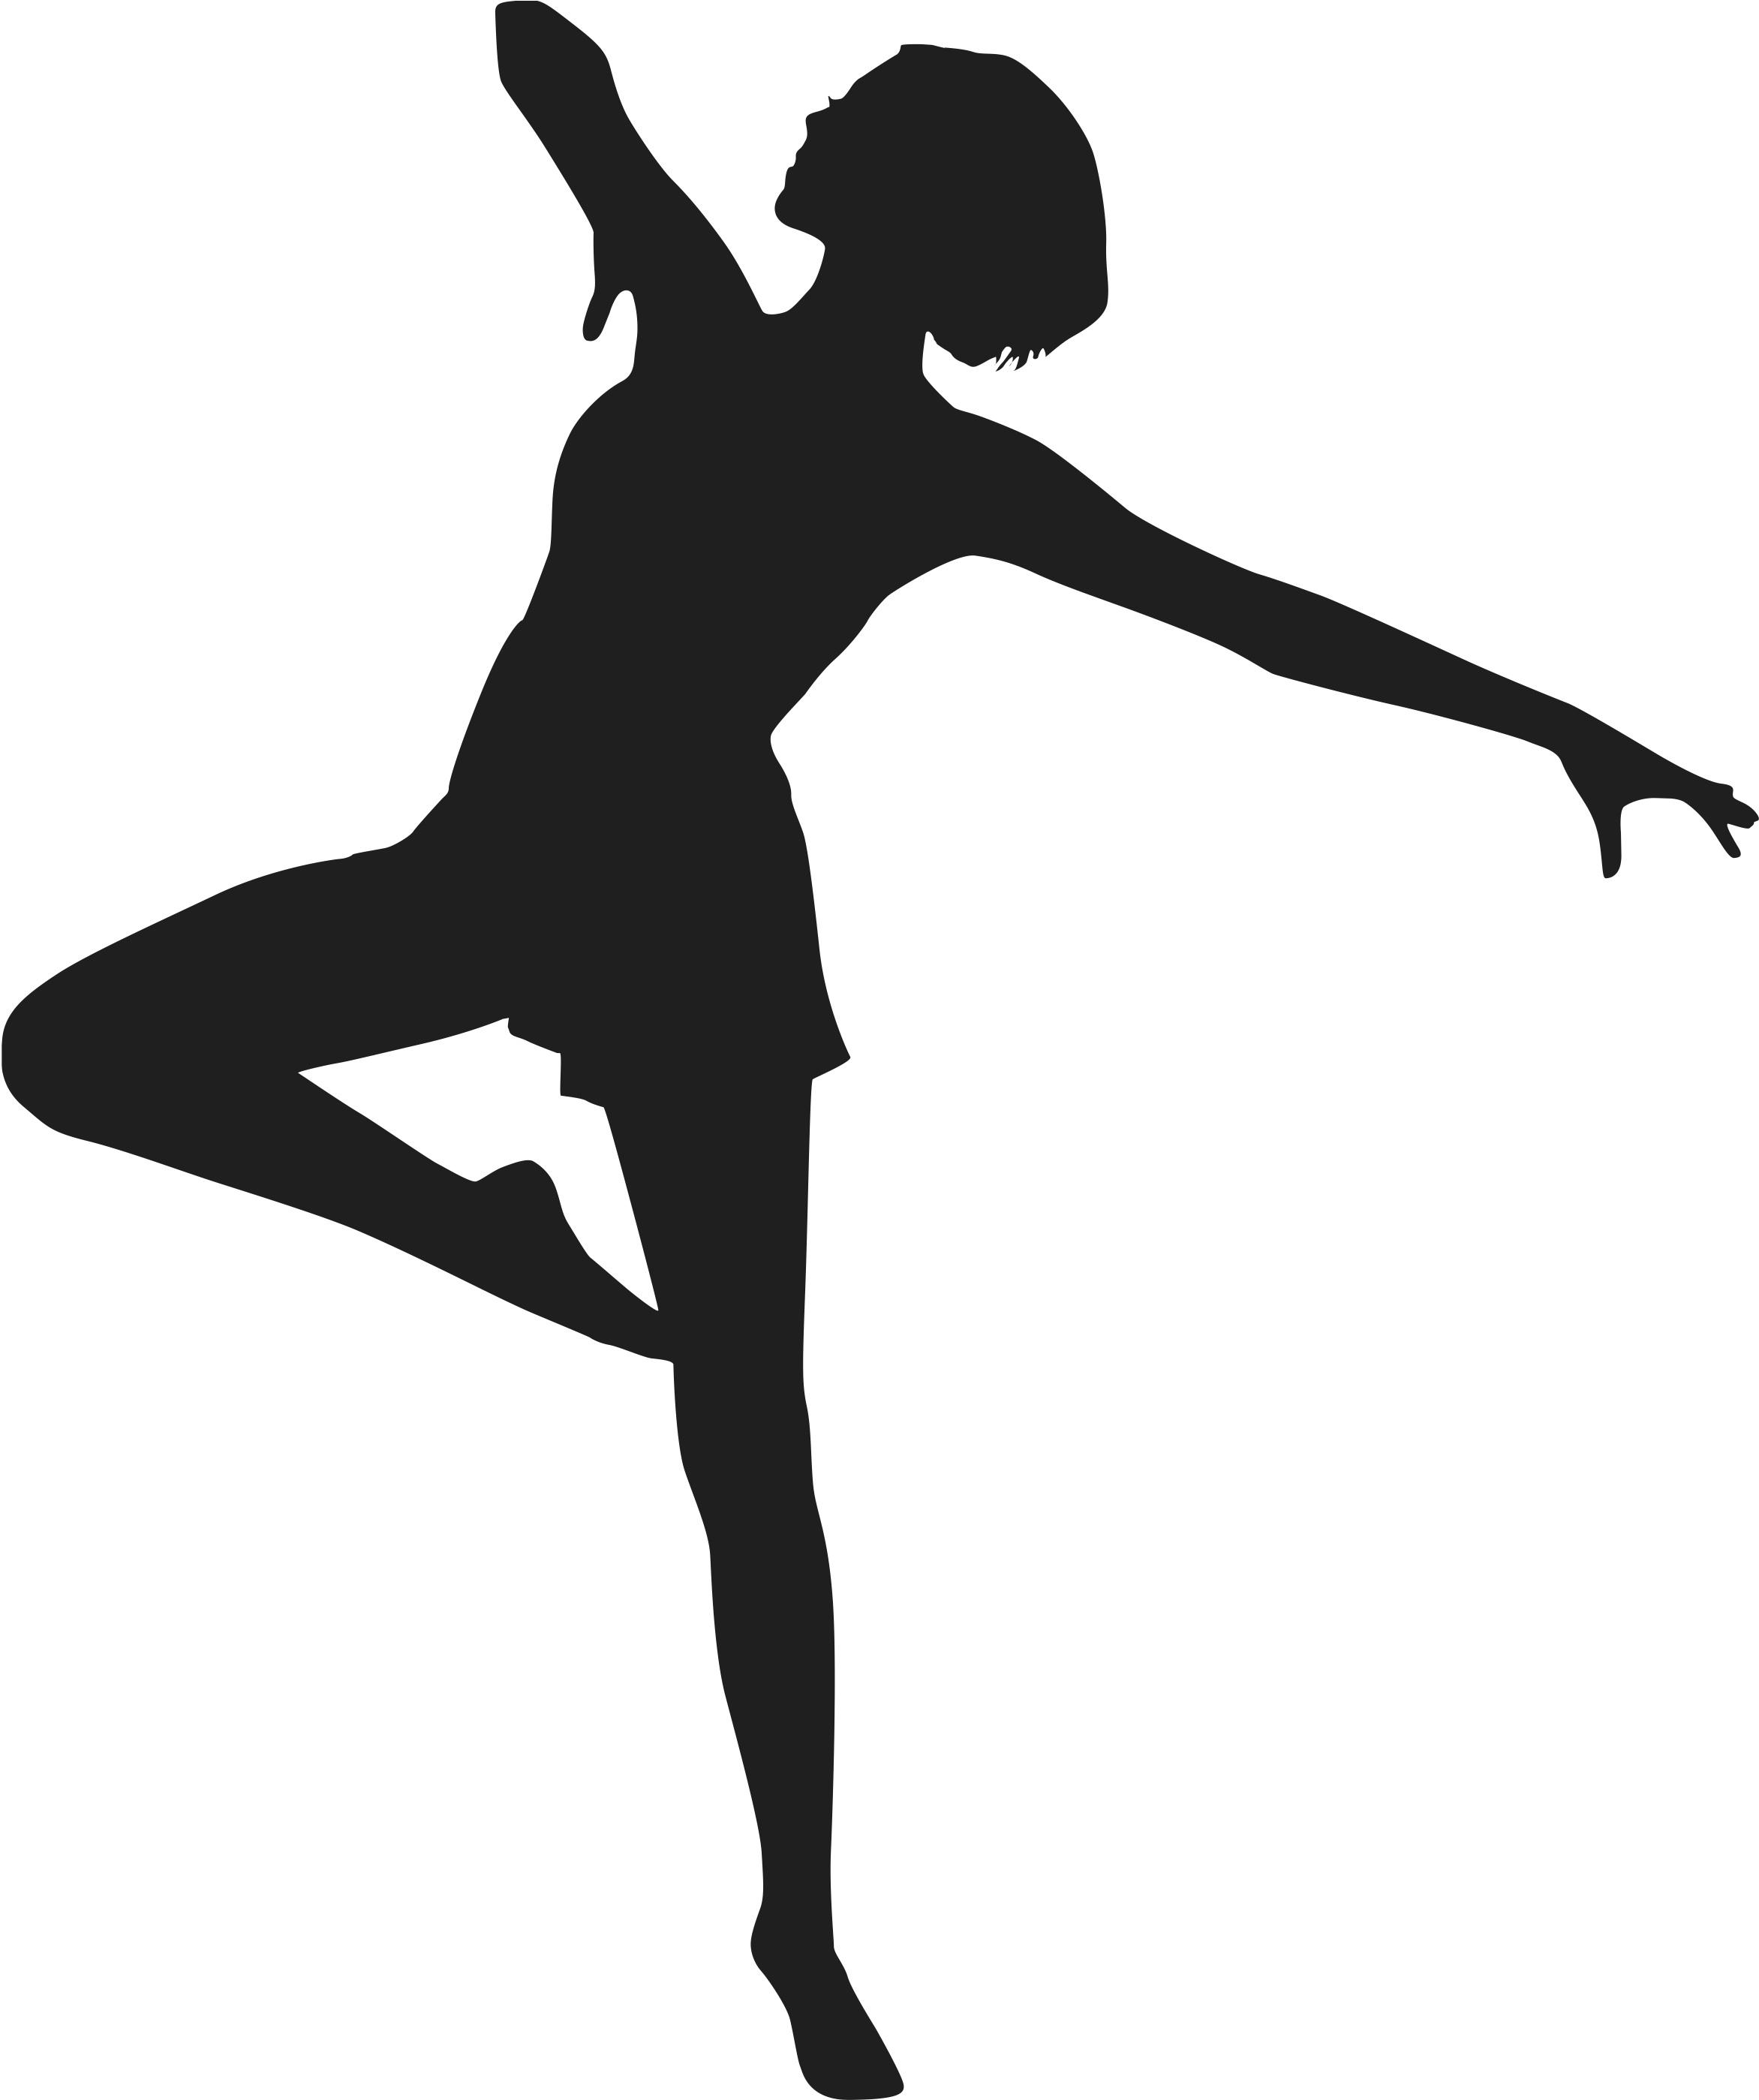 Dance clipart jazz dance, Dance jazz dance Transparent FREE.